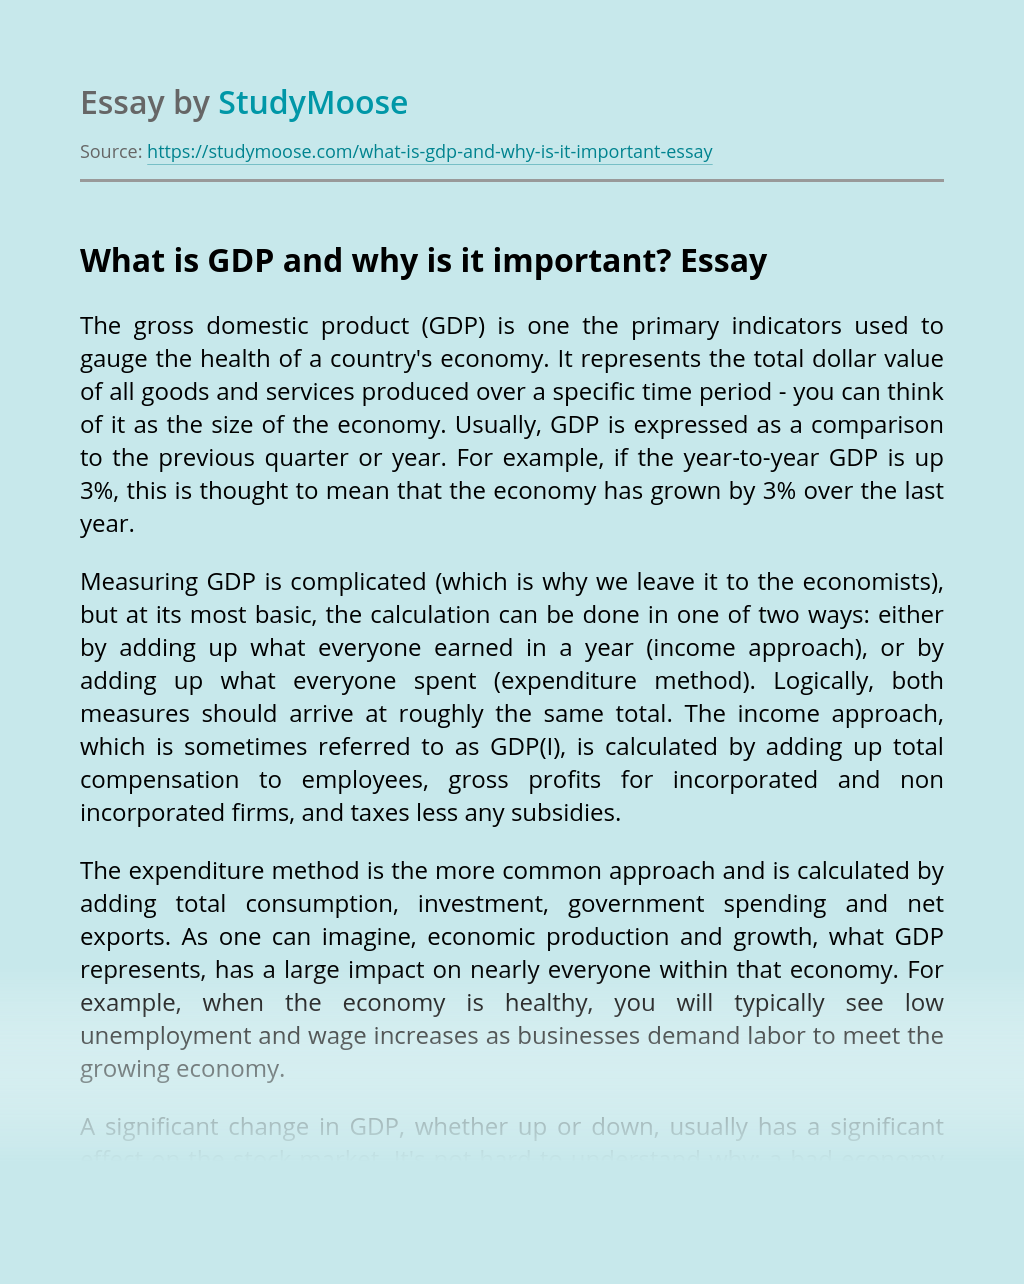 What is GDP and Why is it Important?